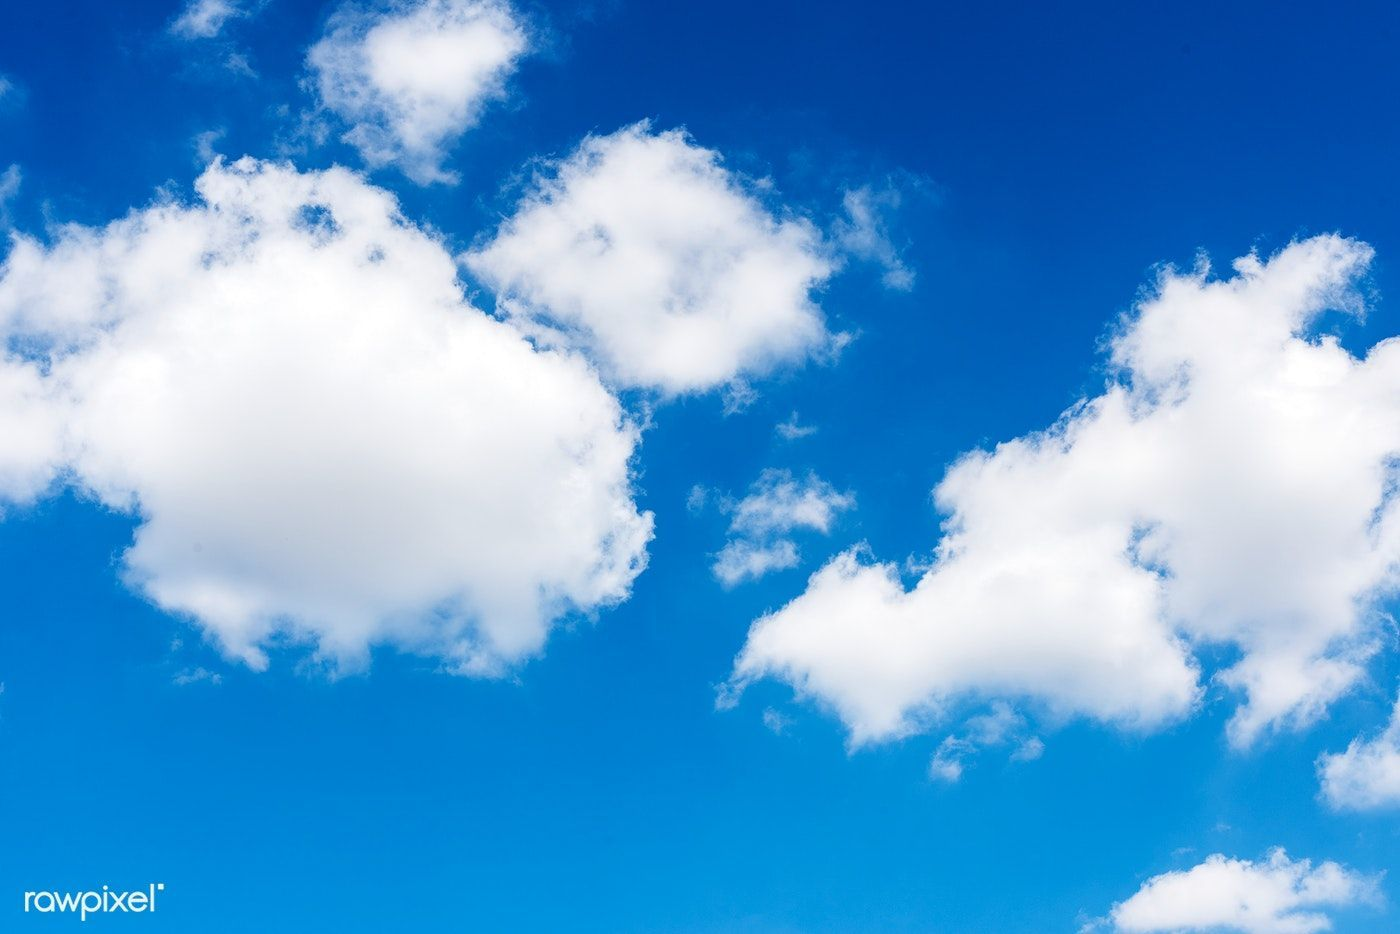 Clouds In The Blue Sky Wallpaper Free Image By Rawpixel Com Fondecranhiver Clouds In The Blue Sky Wallpaper Blue Sky Wallpaper Clouds Blue Sky Background